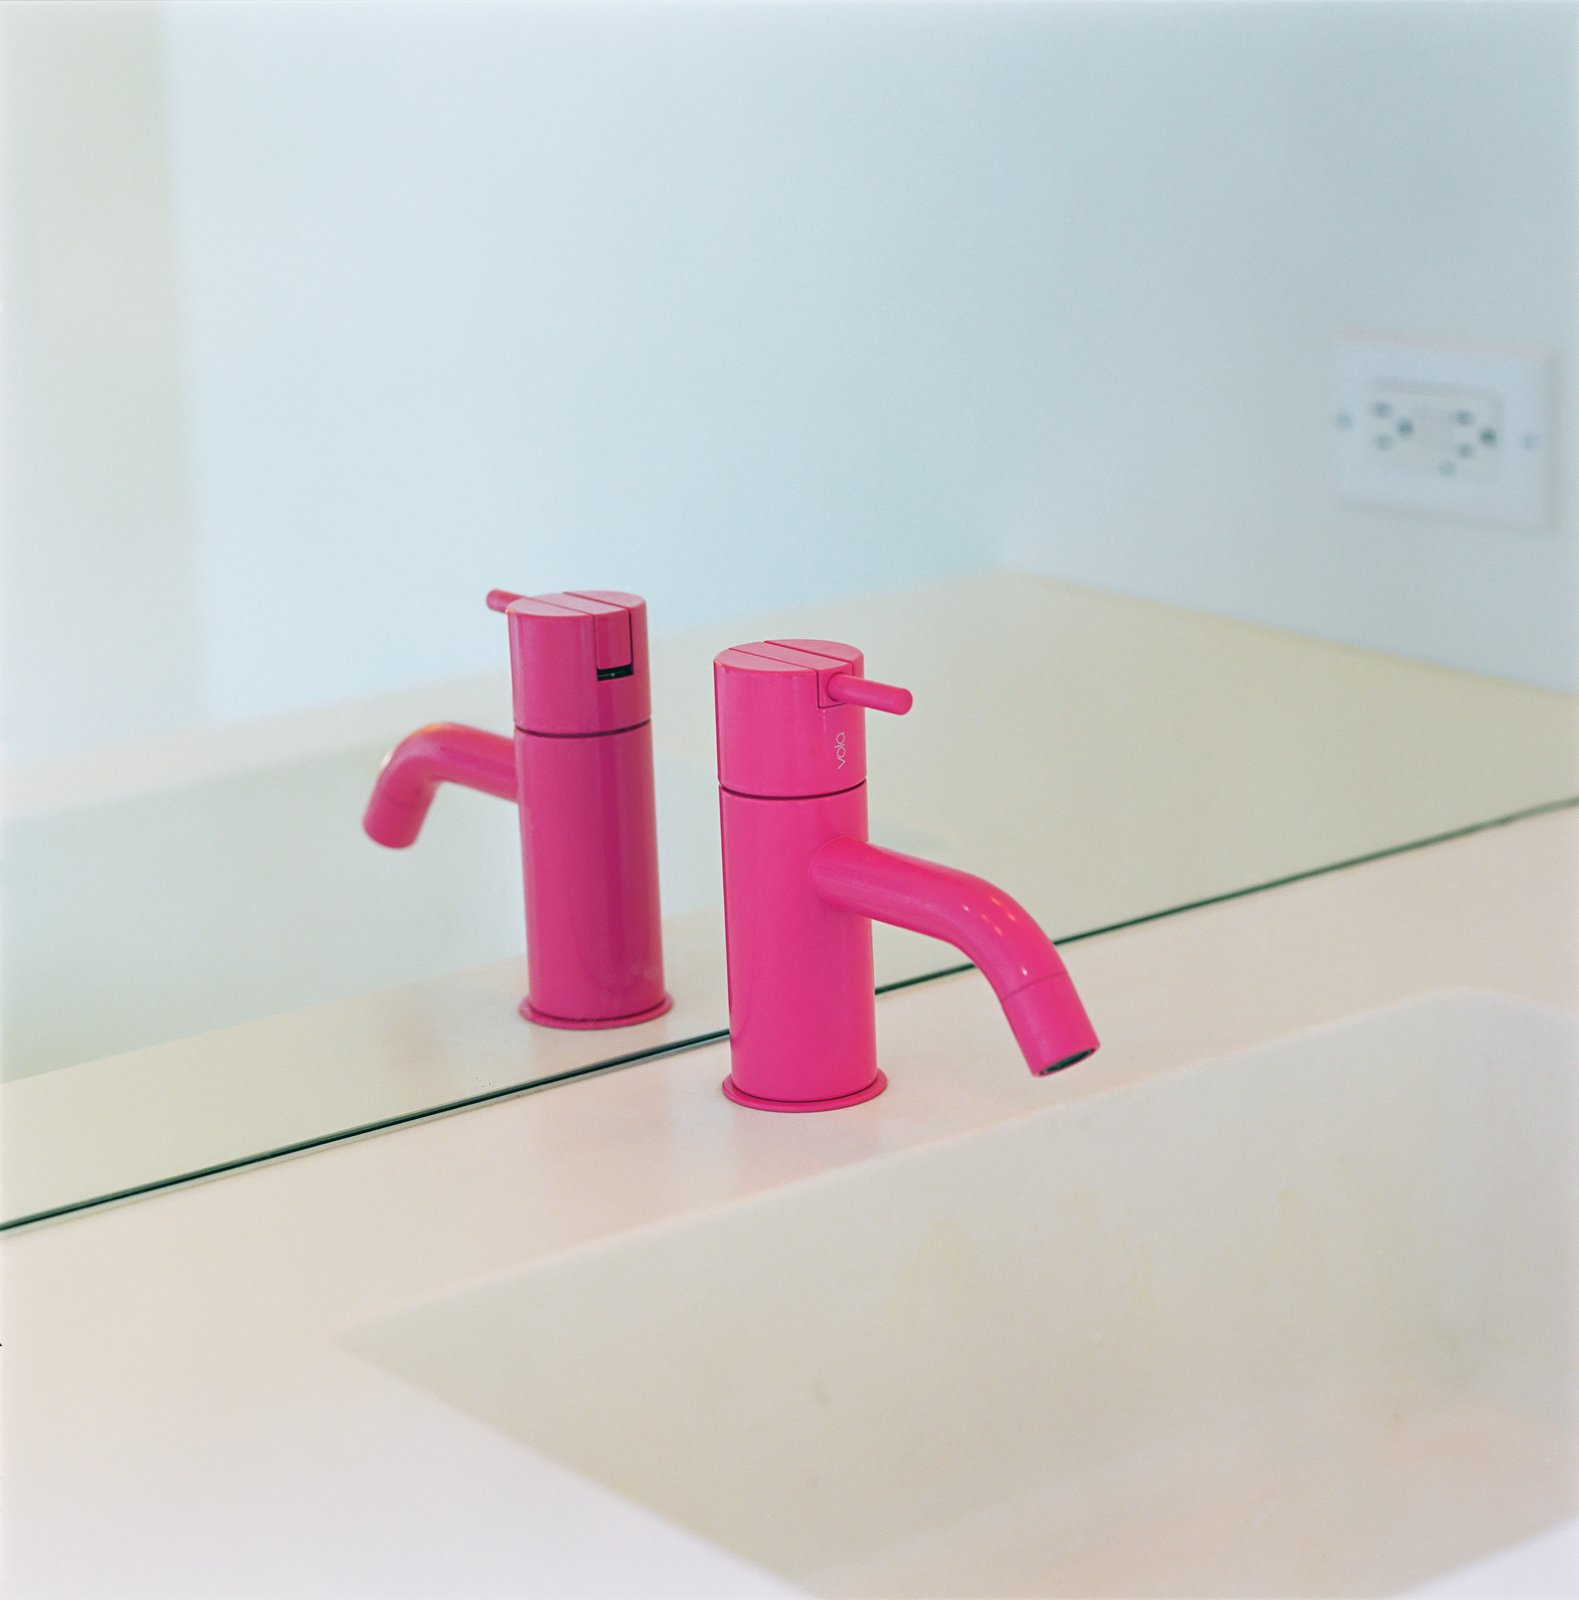 Magenta is one of Grunbaum's favorite colors, so he picked out a magenta Tufty-Time couch by B&B Italia and added a hot pink powder-coated faucet by Vola for the downstairs bath.